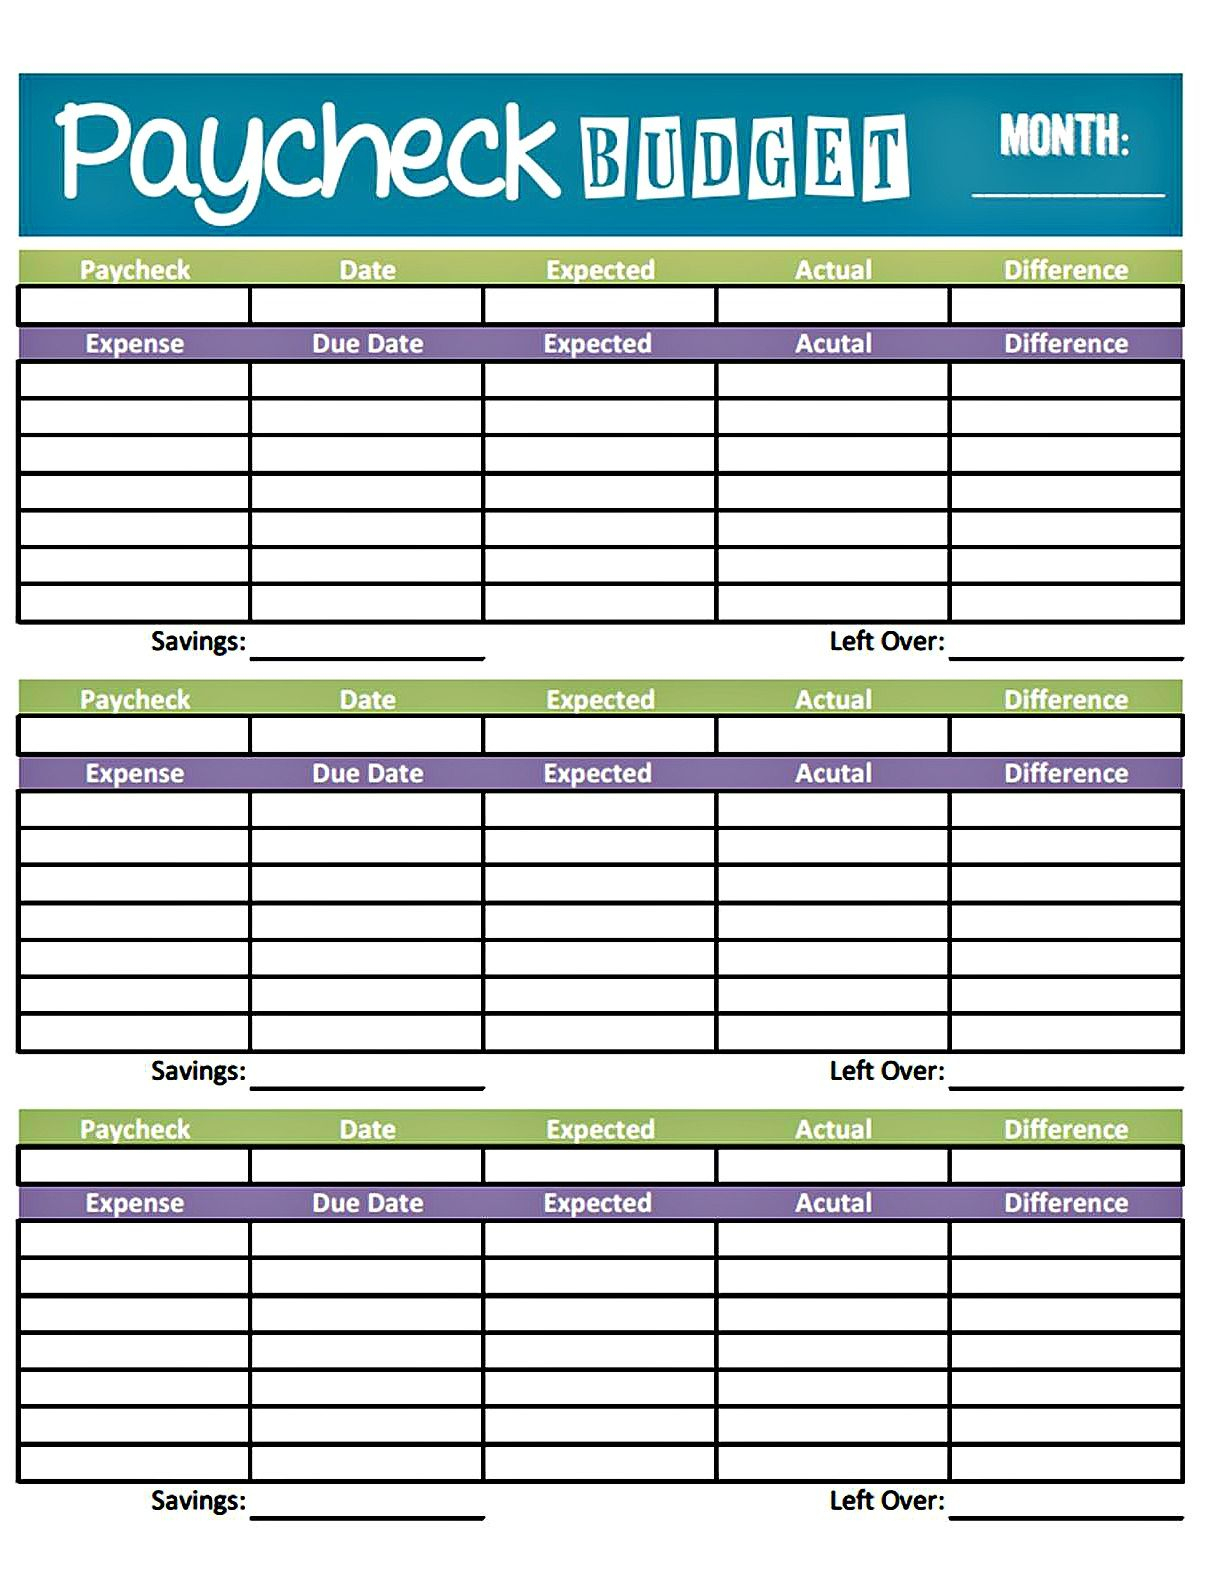 Easy Printable Budget Worksheet | Get Paid Weekly And Charlie Gets | Easy Budget Planner Free Printable Worksheets